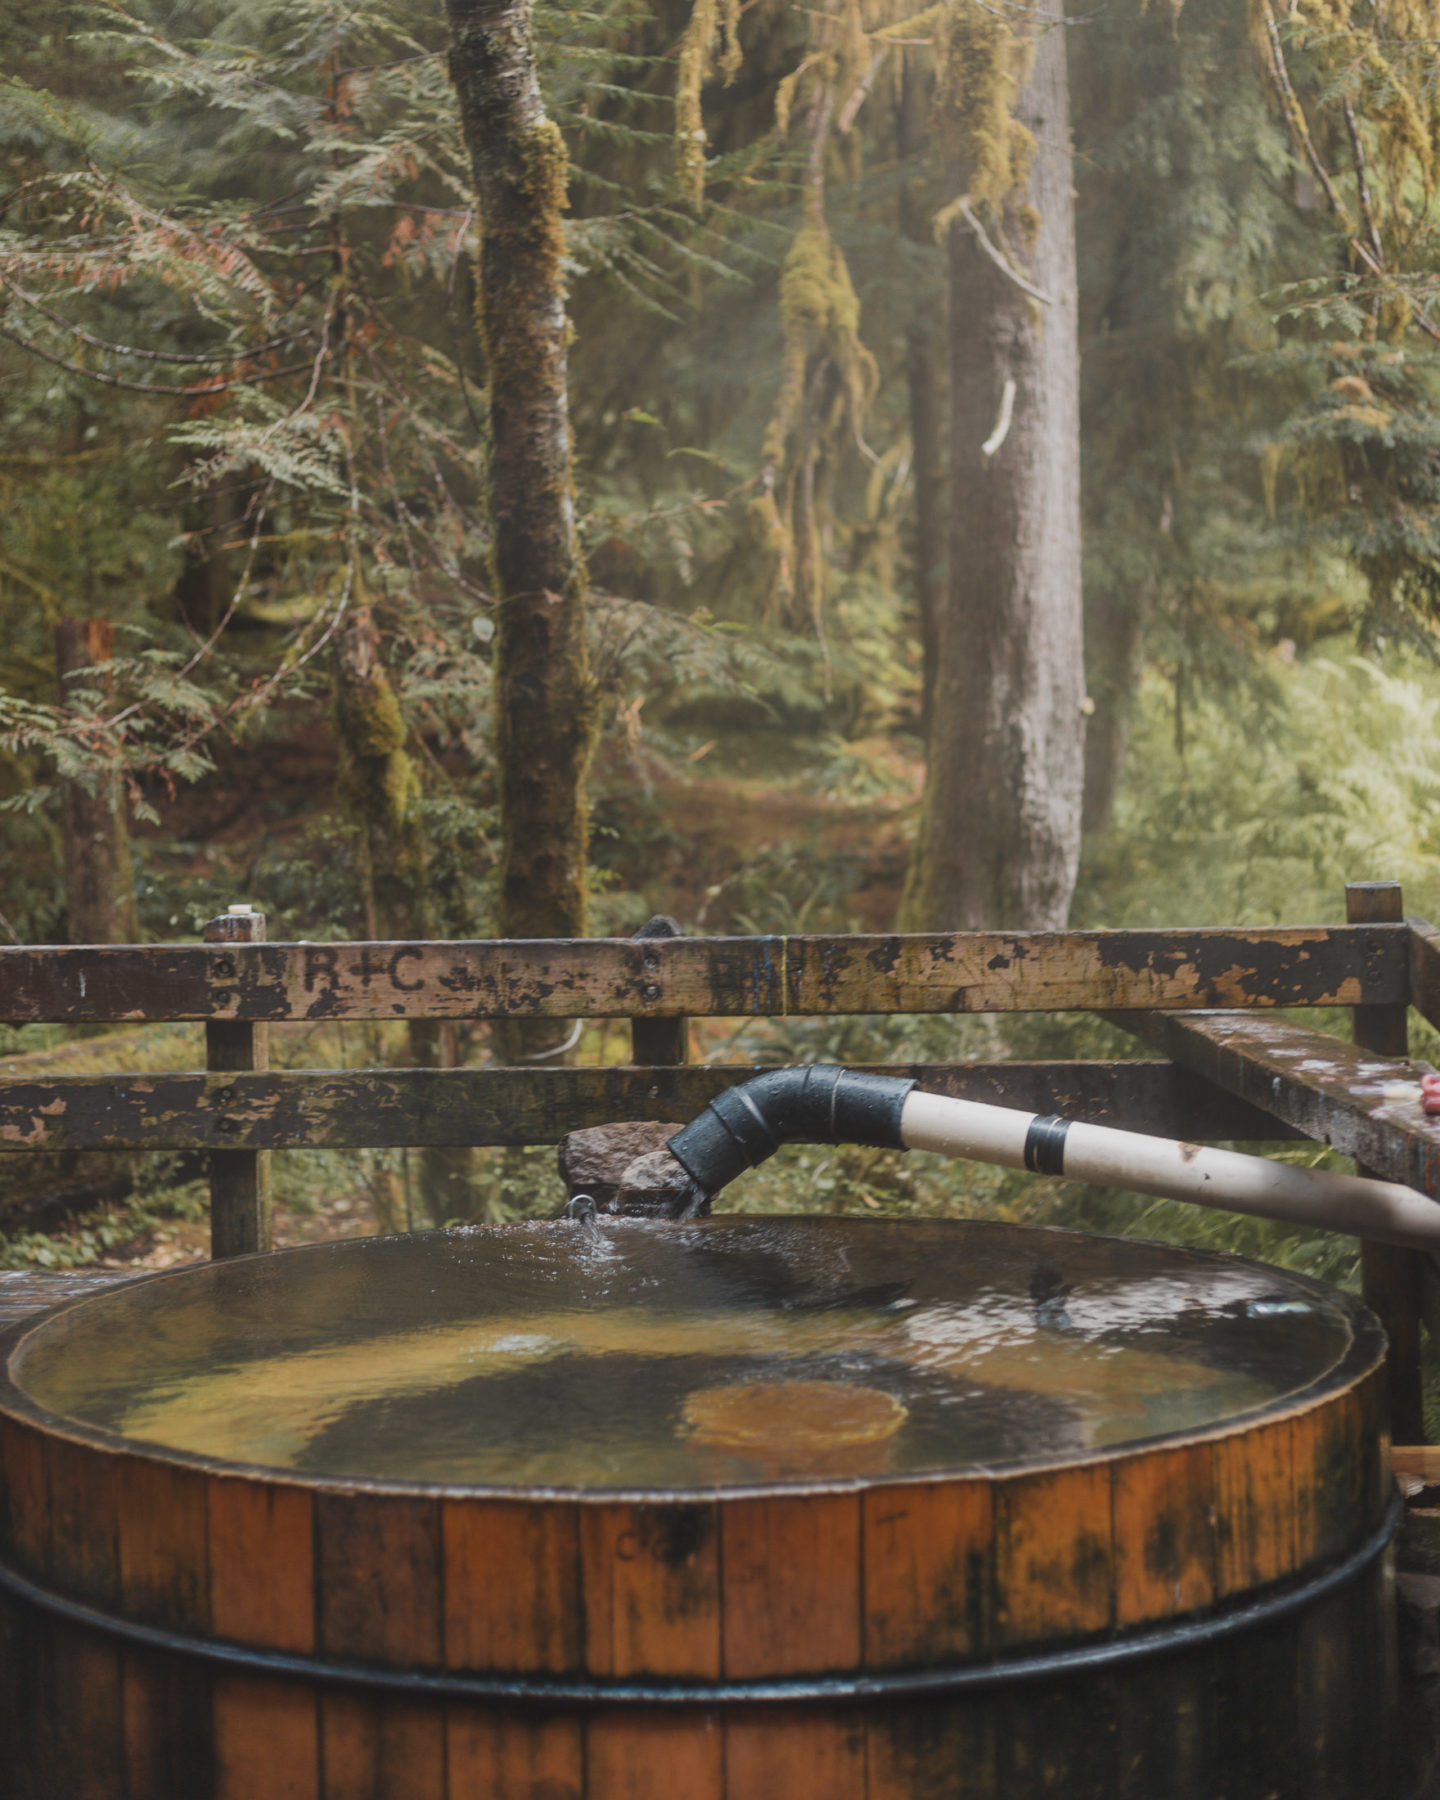 The Bagby Hot Springs Hike: Relaxation You Have to Work for